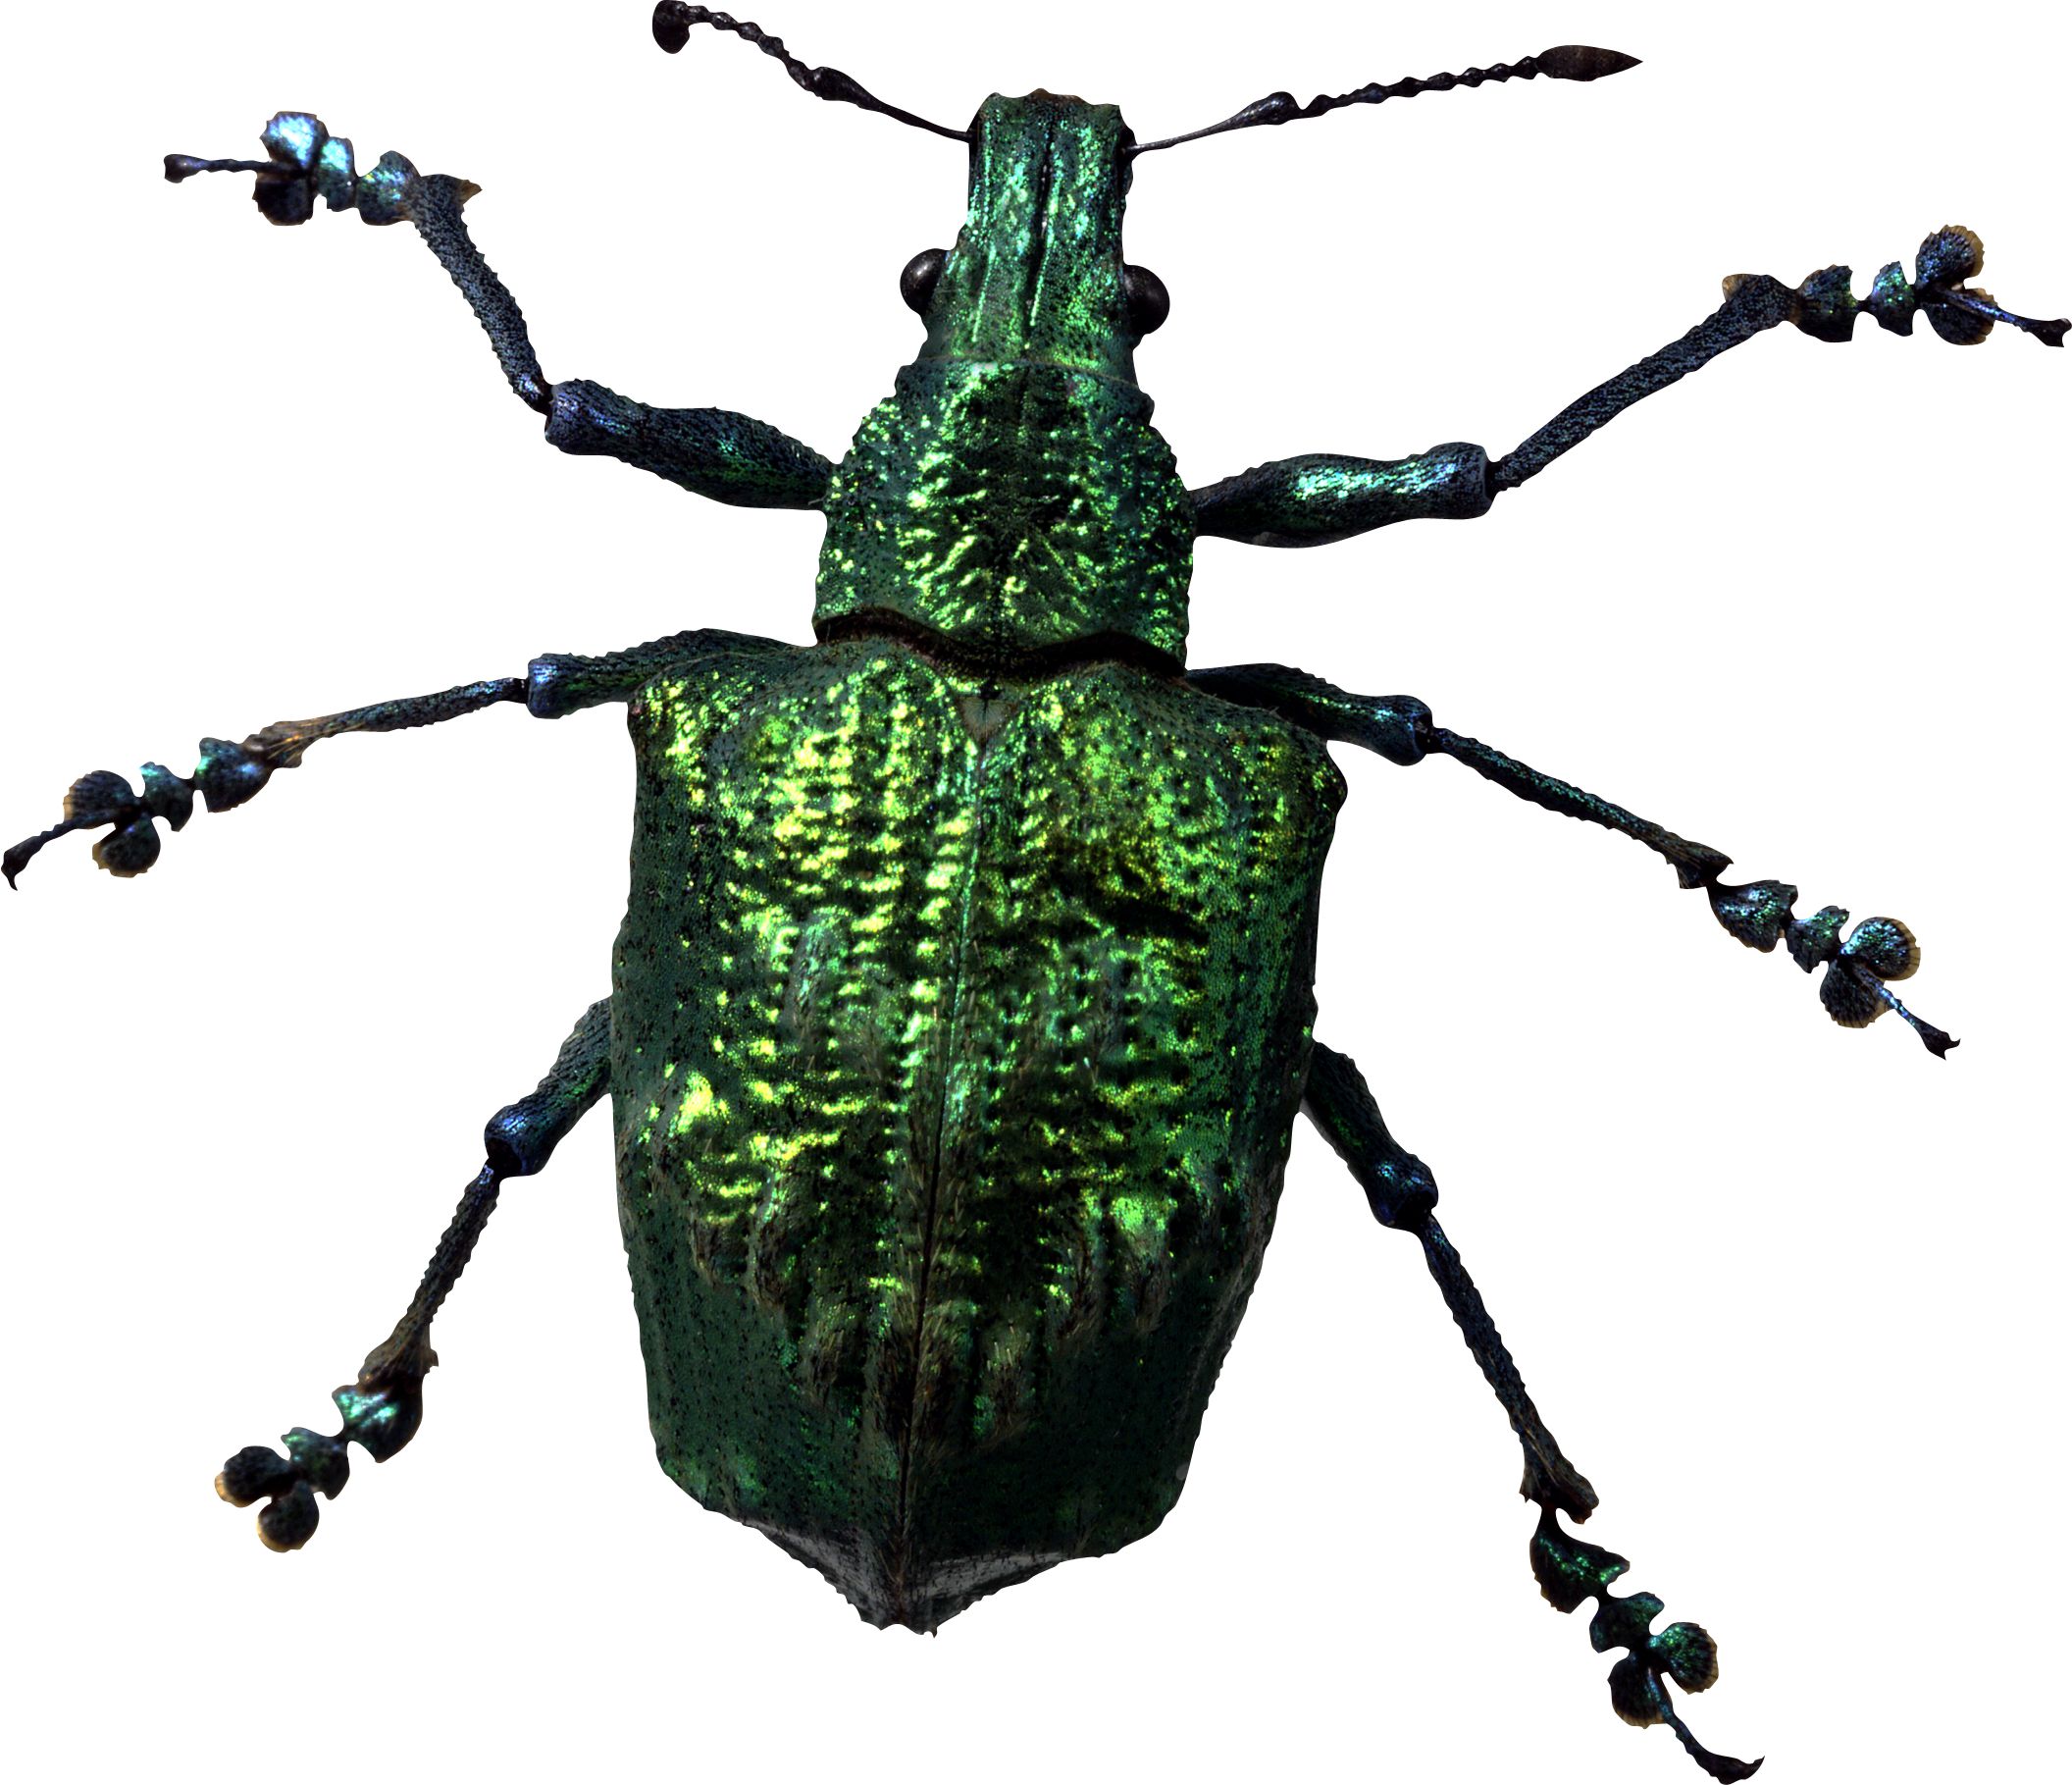 Insect Bug Png Image - Insects And Bugs, Transparent background PNG HD thumbnail